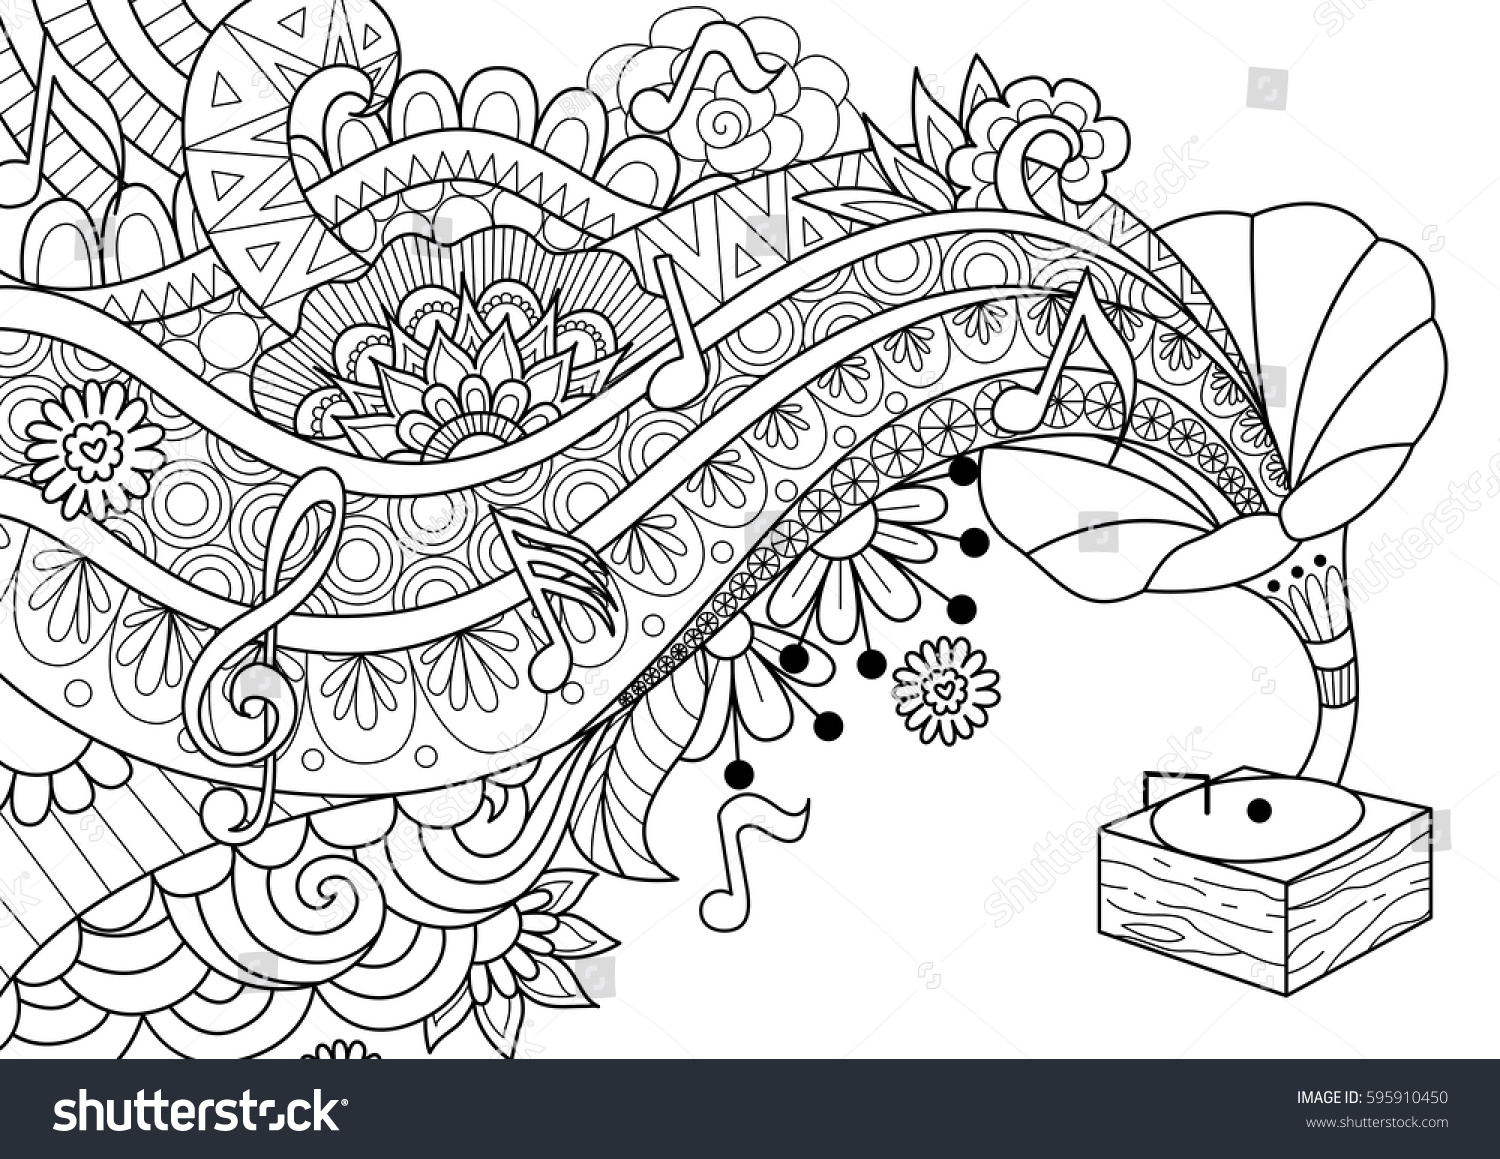 Old Bronze Phonograph Doodle Design For Coloring Book Page